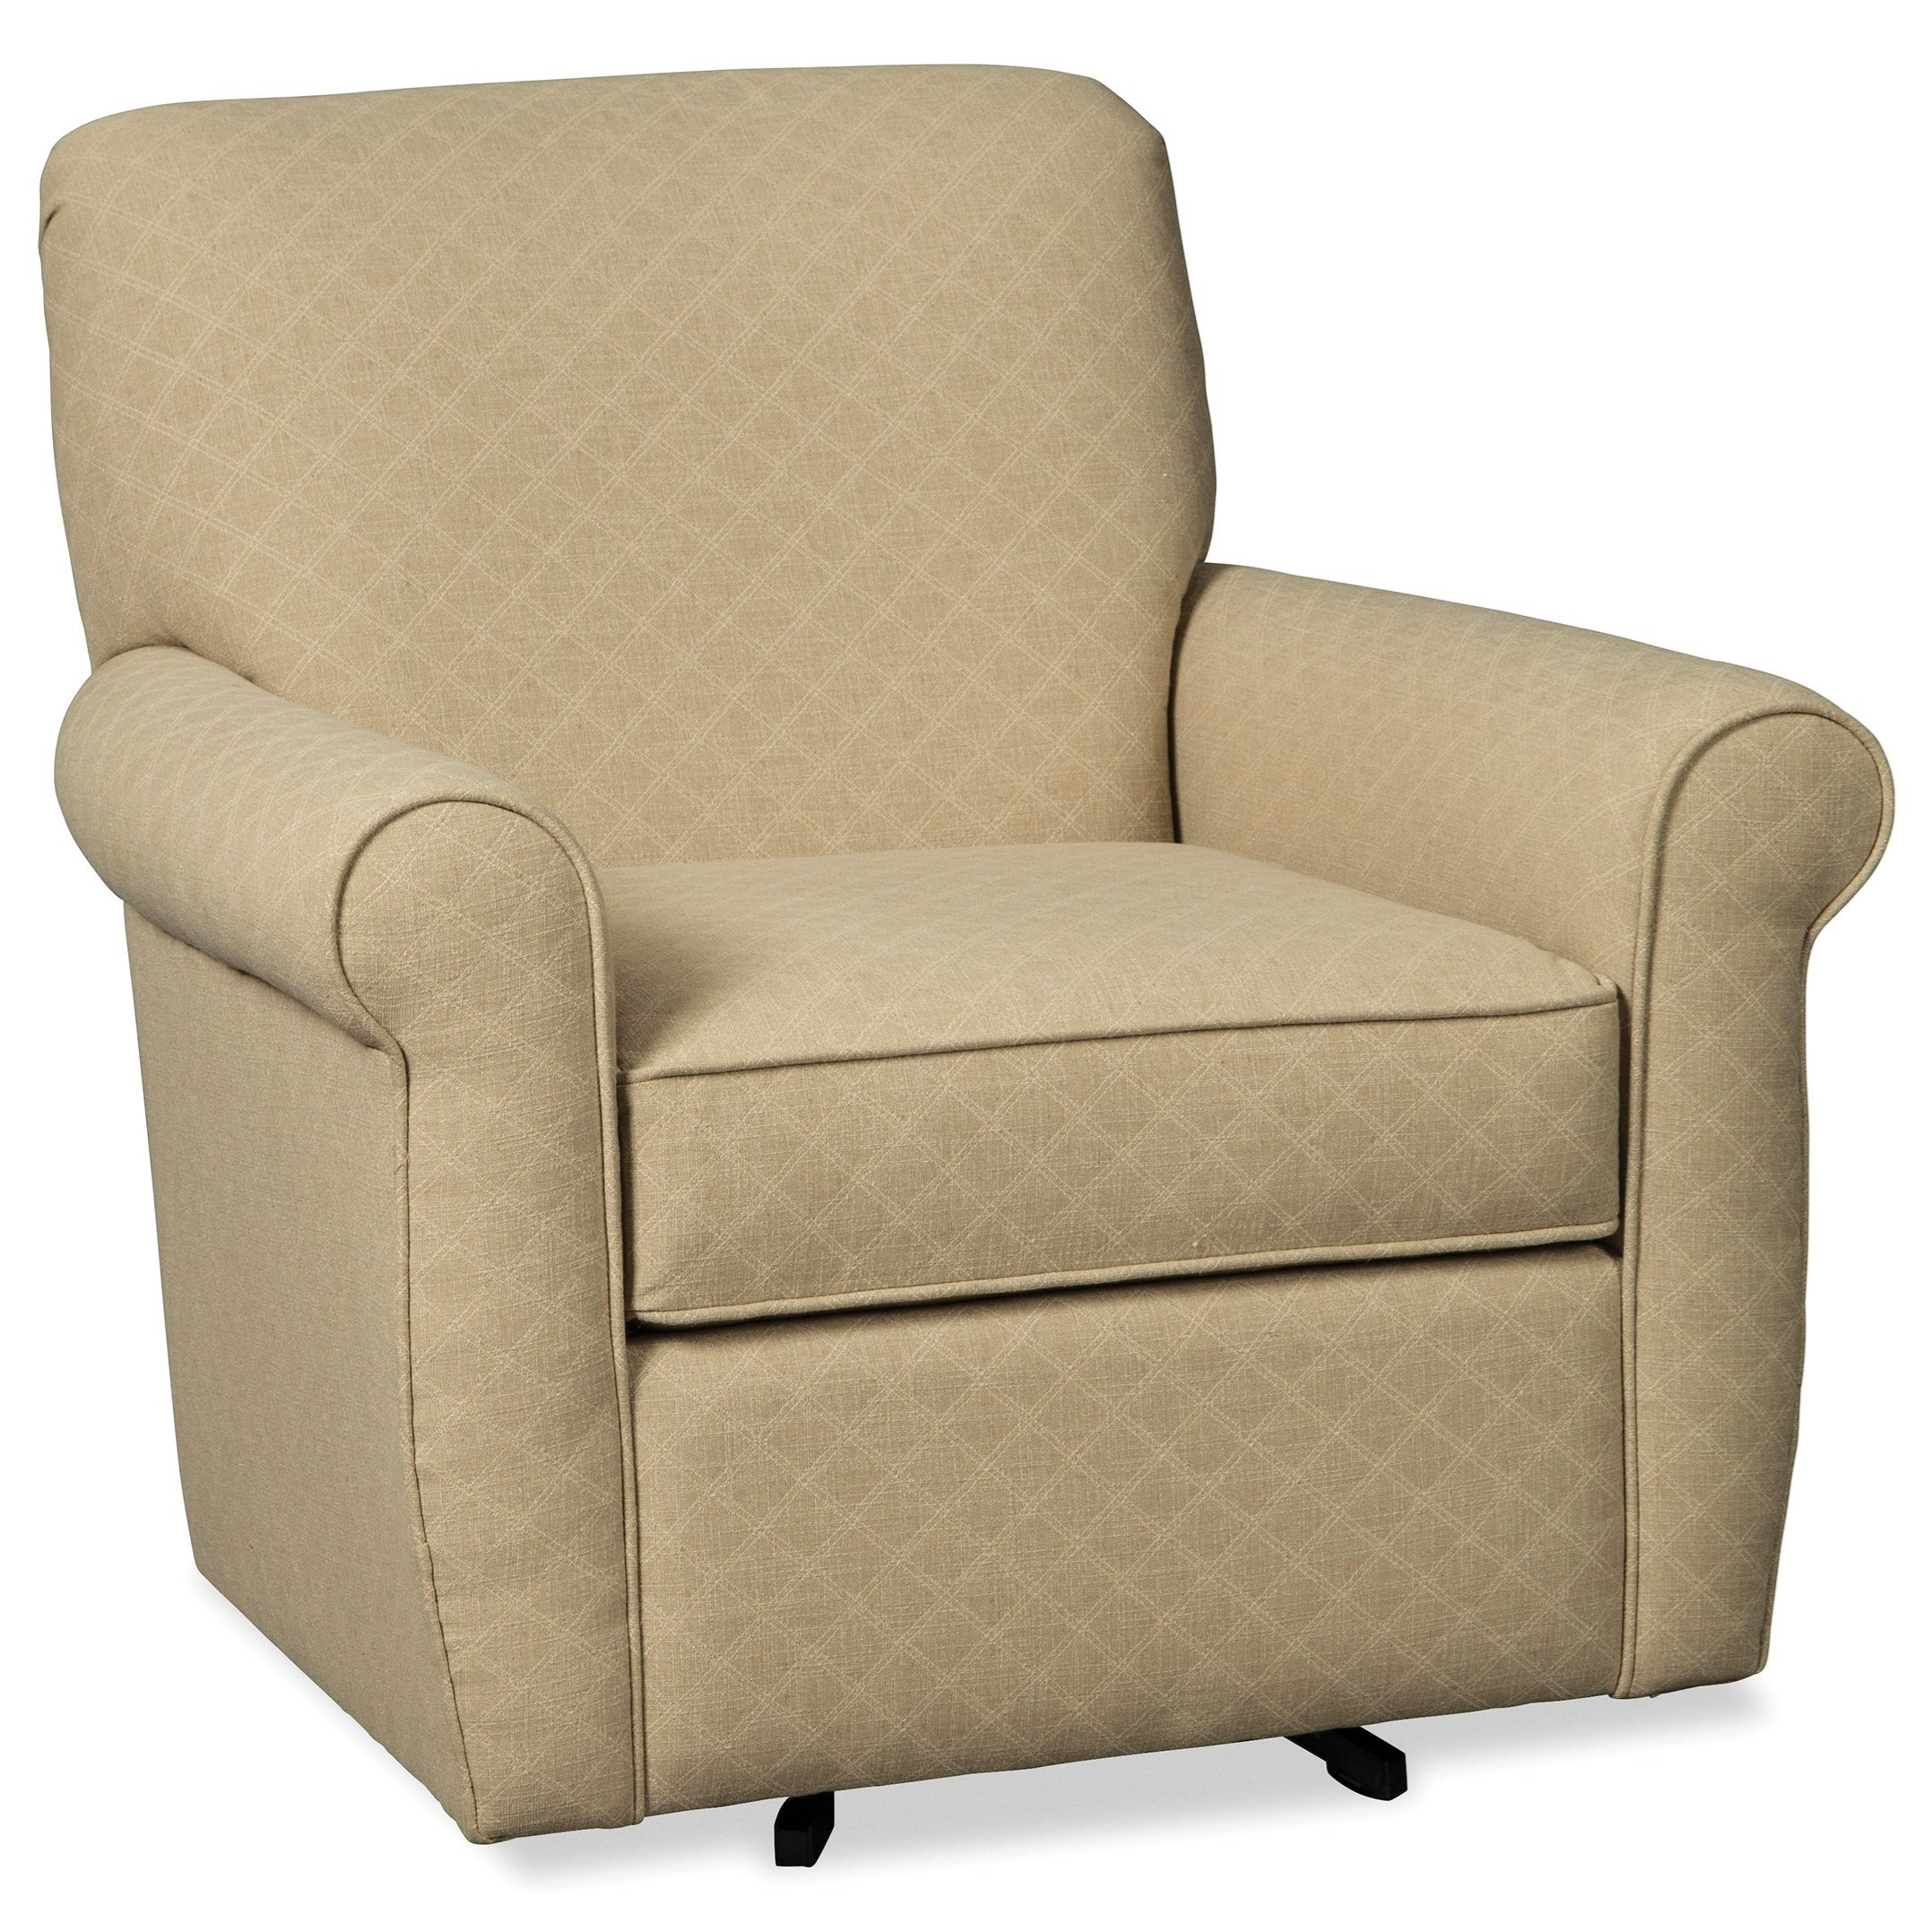 075610-075710 Casual Swivel Chair | Stoney Creek Furniture throughout Amari Swivel Accent Chairs